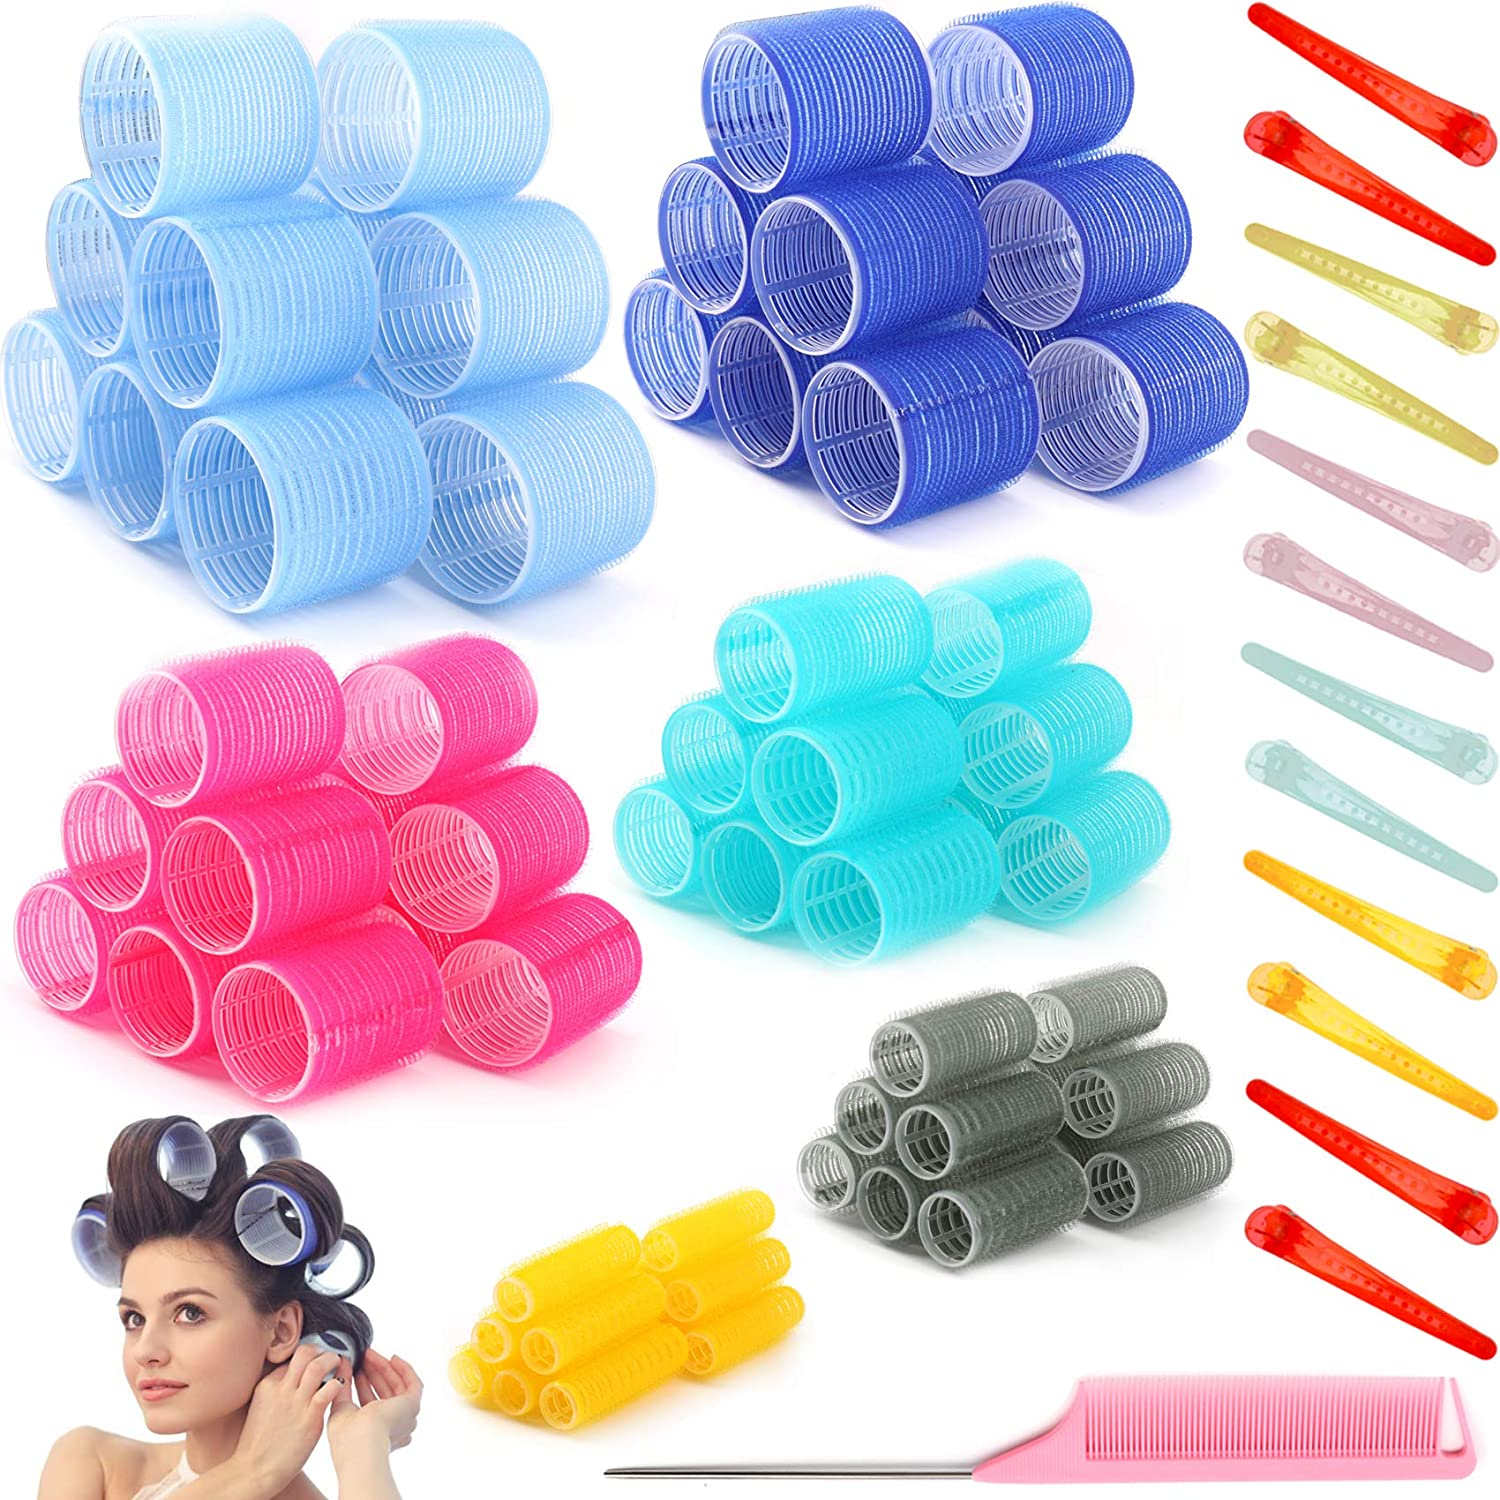 85 PCS Self Grip Hair Super El Paso Mall sale period limited Roller Curler Heatless Sets 6 Jumbo S Size